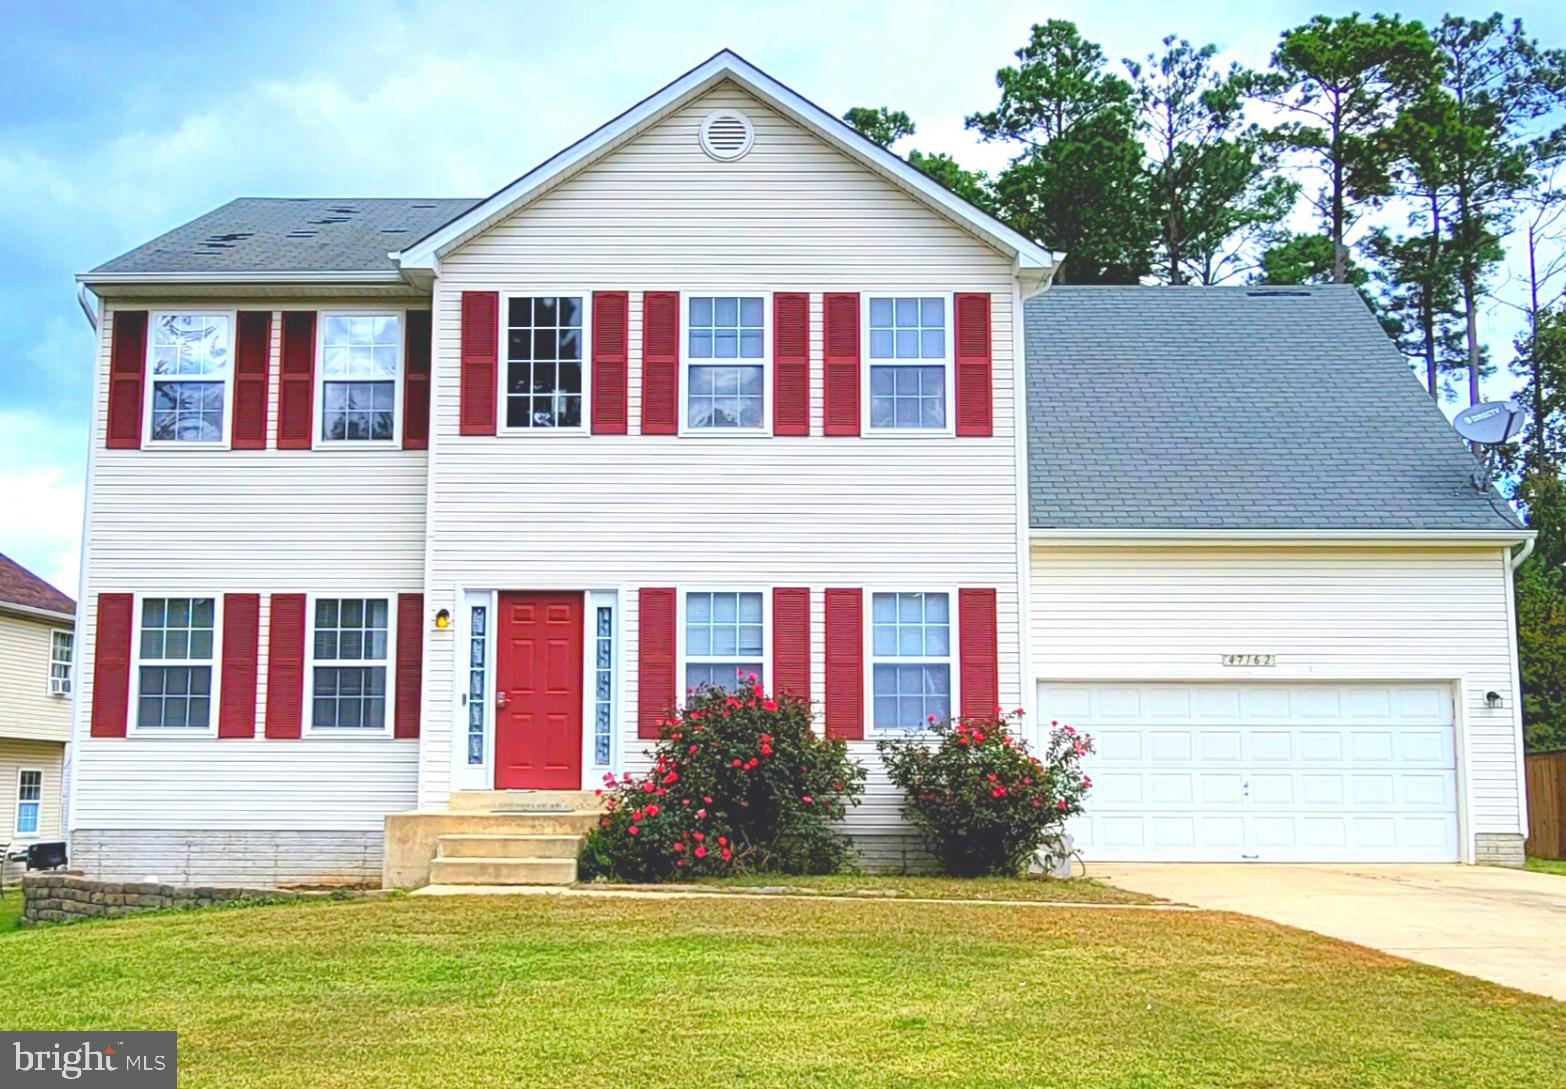 Enjoy family and friends in spacious open floor plan on main level. Kitchen and breakfast area opens